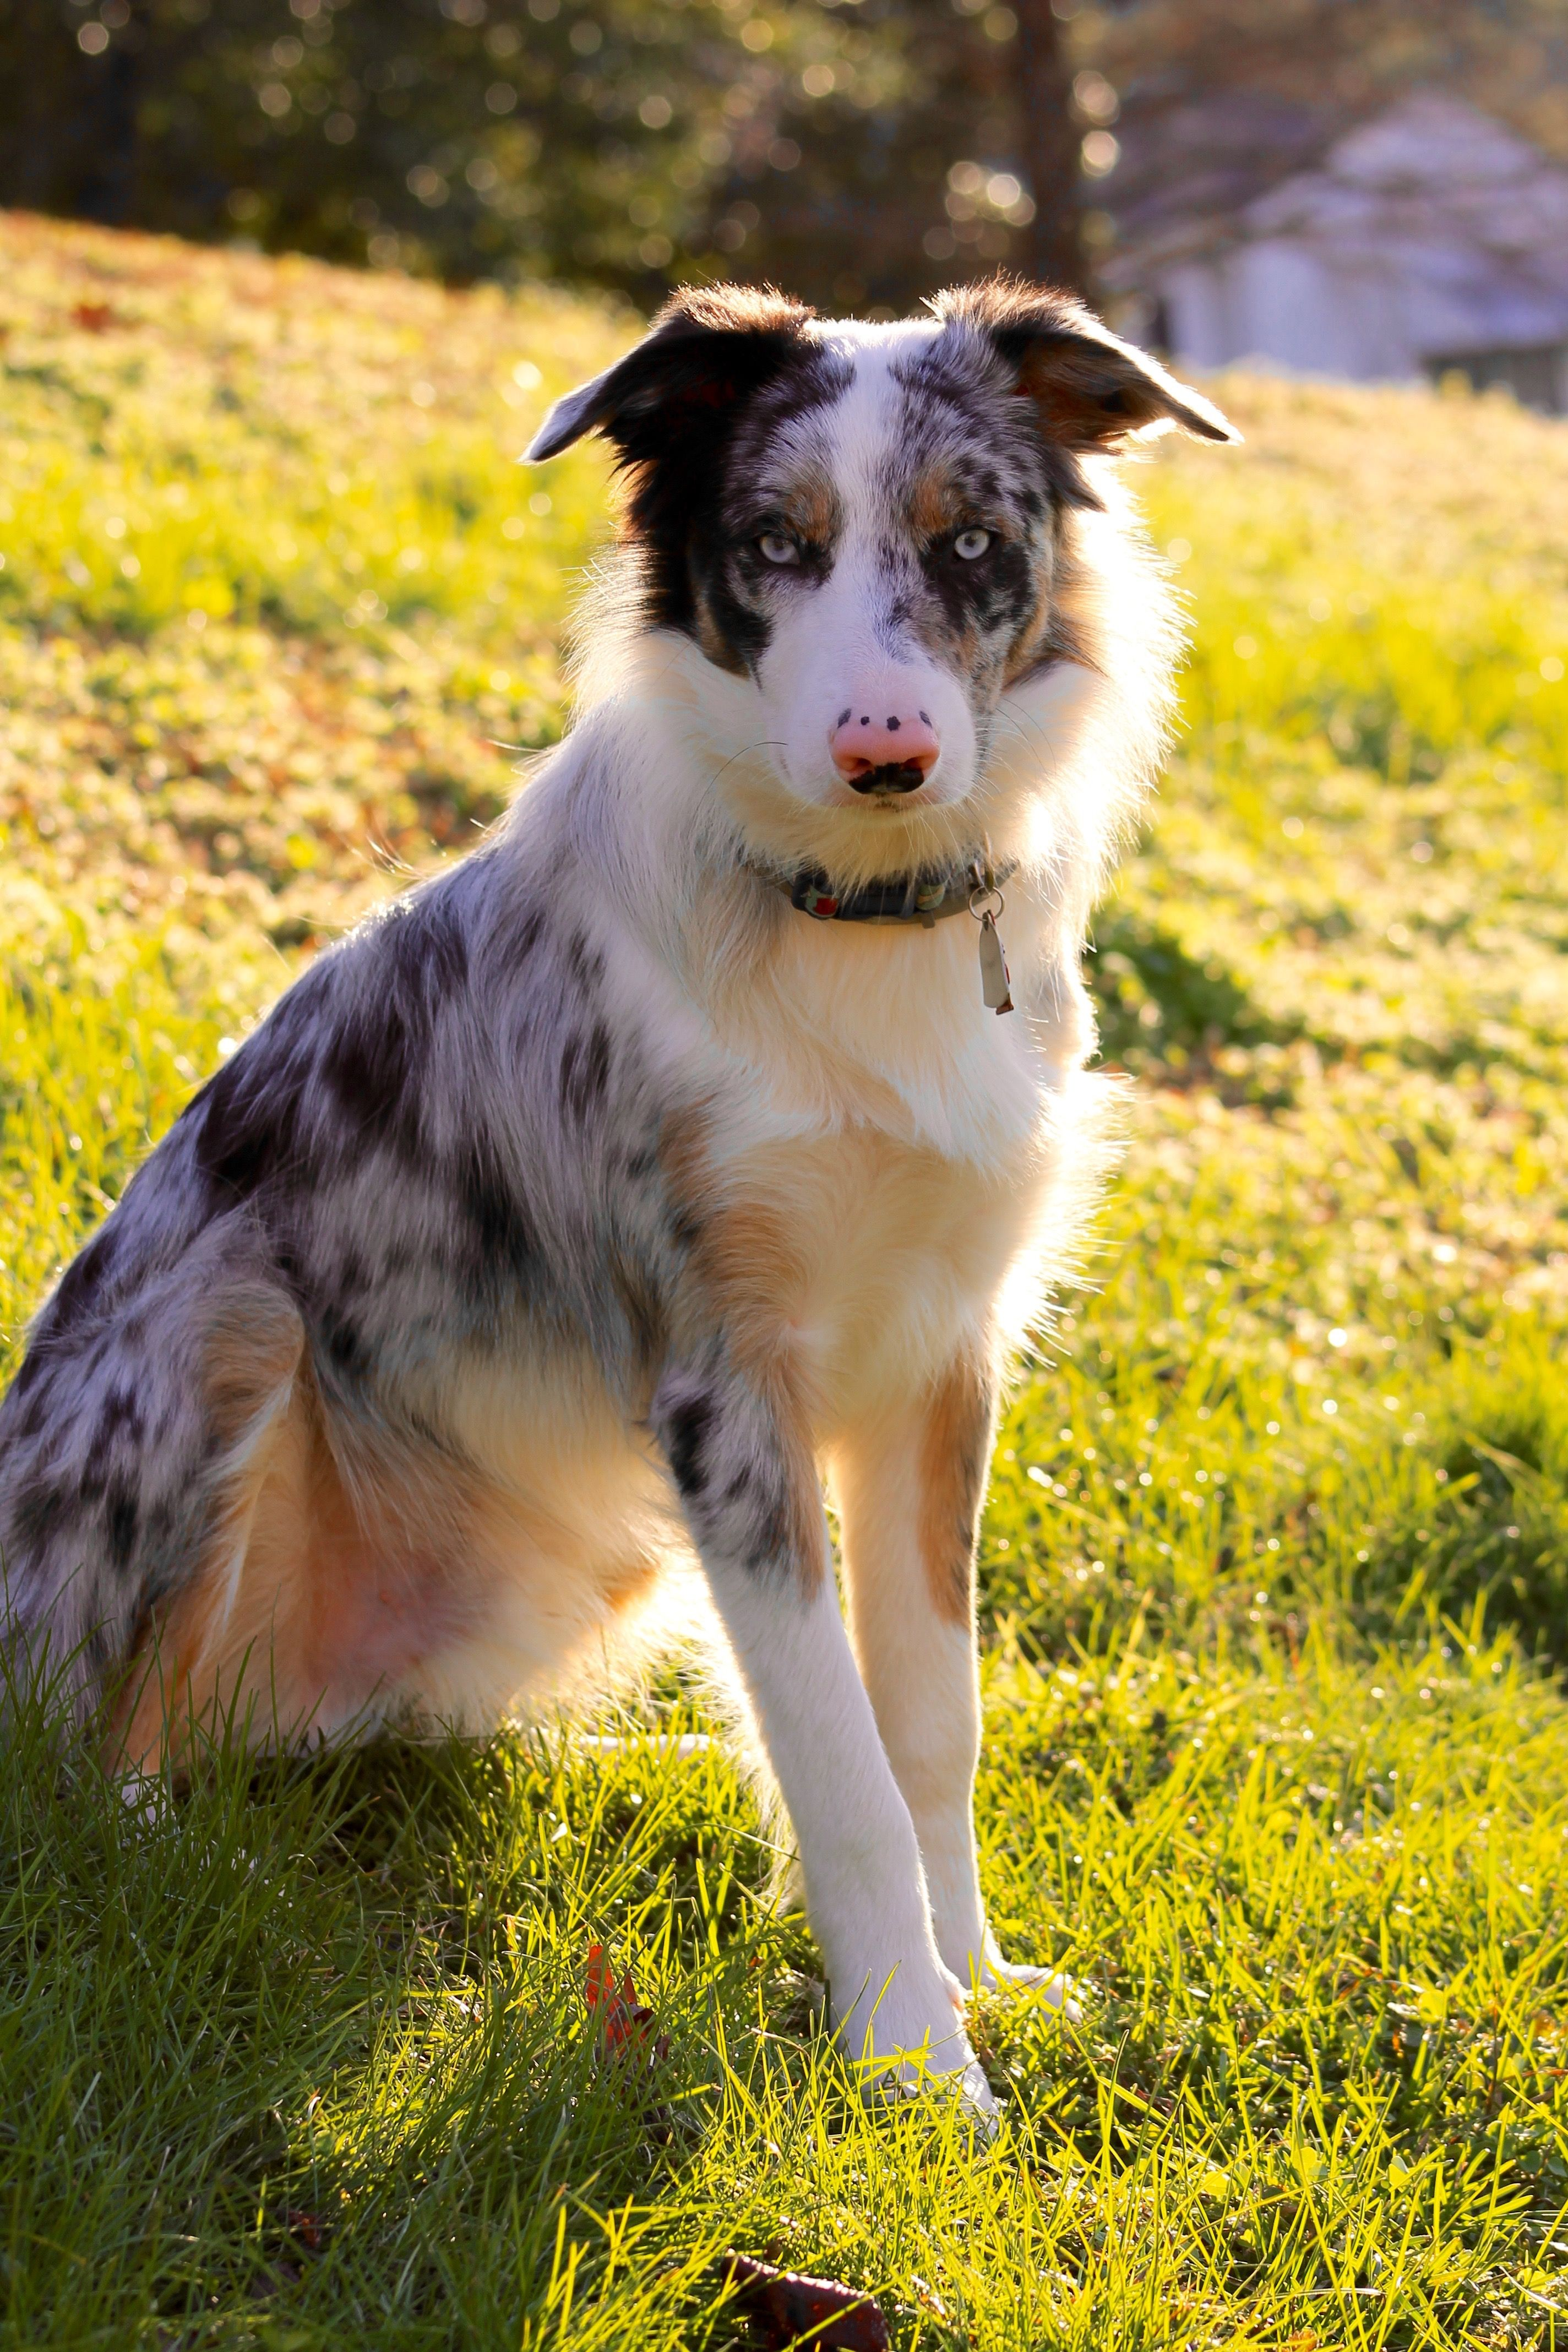 This Dog Is So Beautiful I Want To Adopt Her So Badly Rough